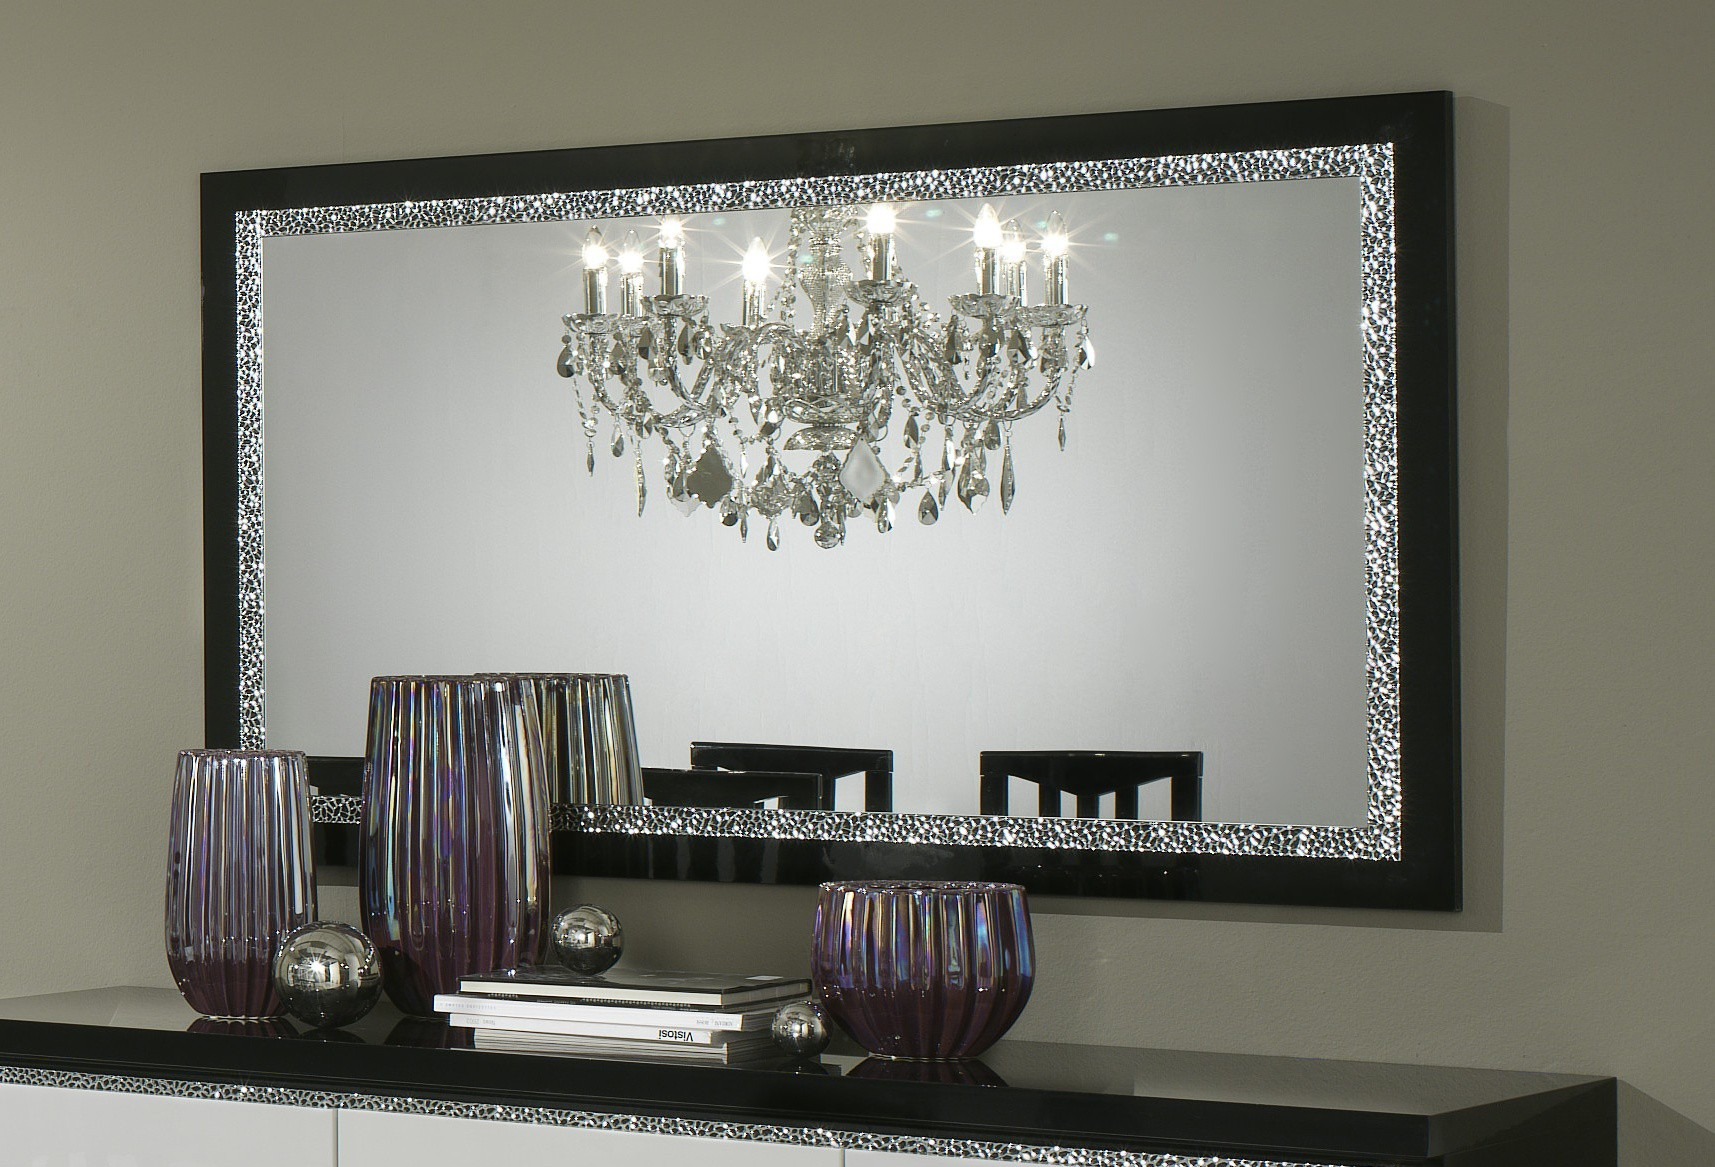 miroir de salon id es de d coration int rieure french decor. Black Bedroom Furniture Sets. Home Design Ideas